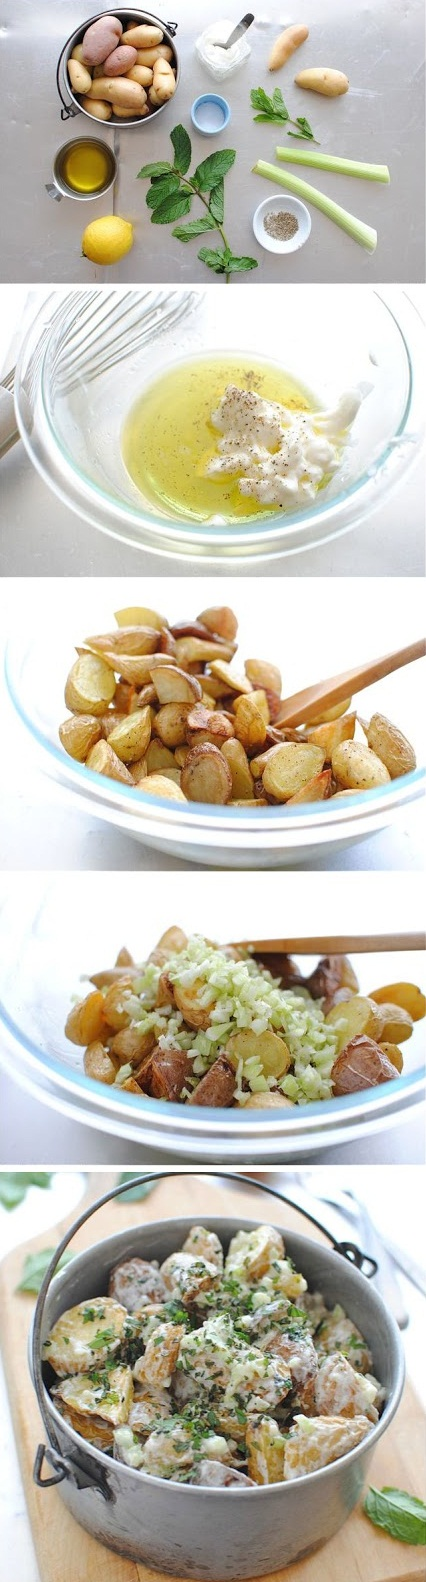 Lemony-Roasted-Potato-Salad